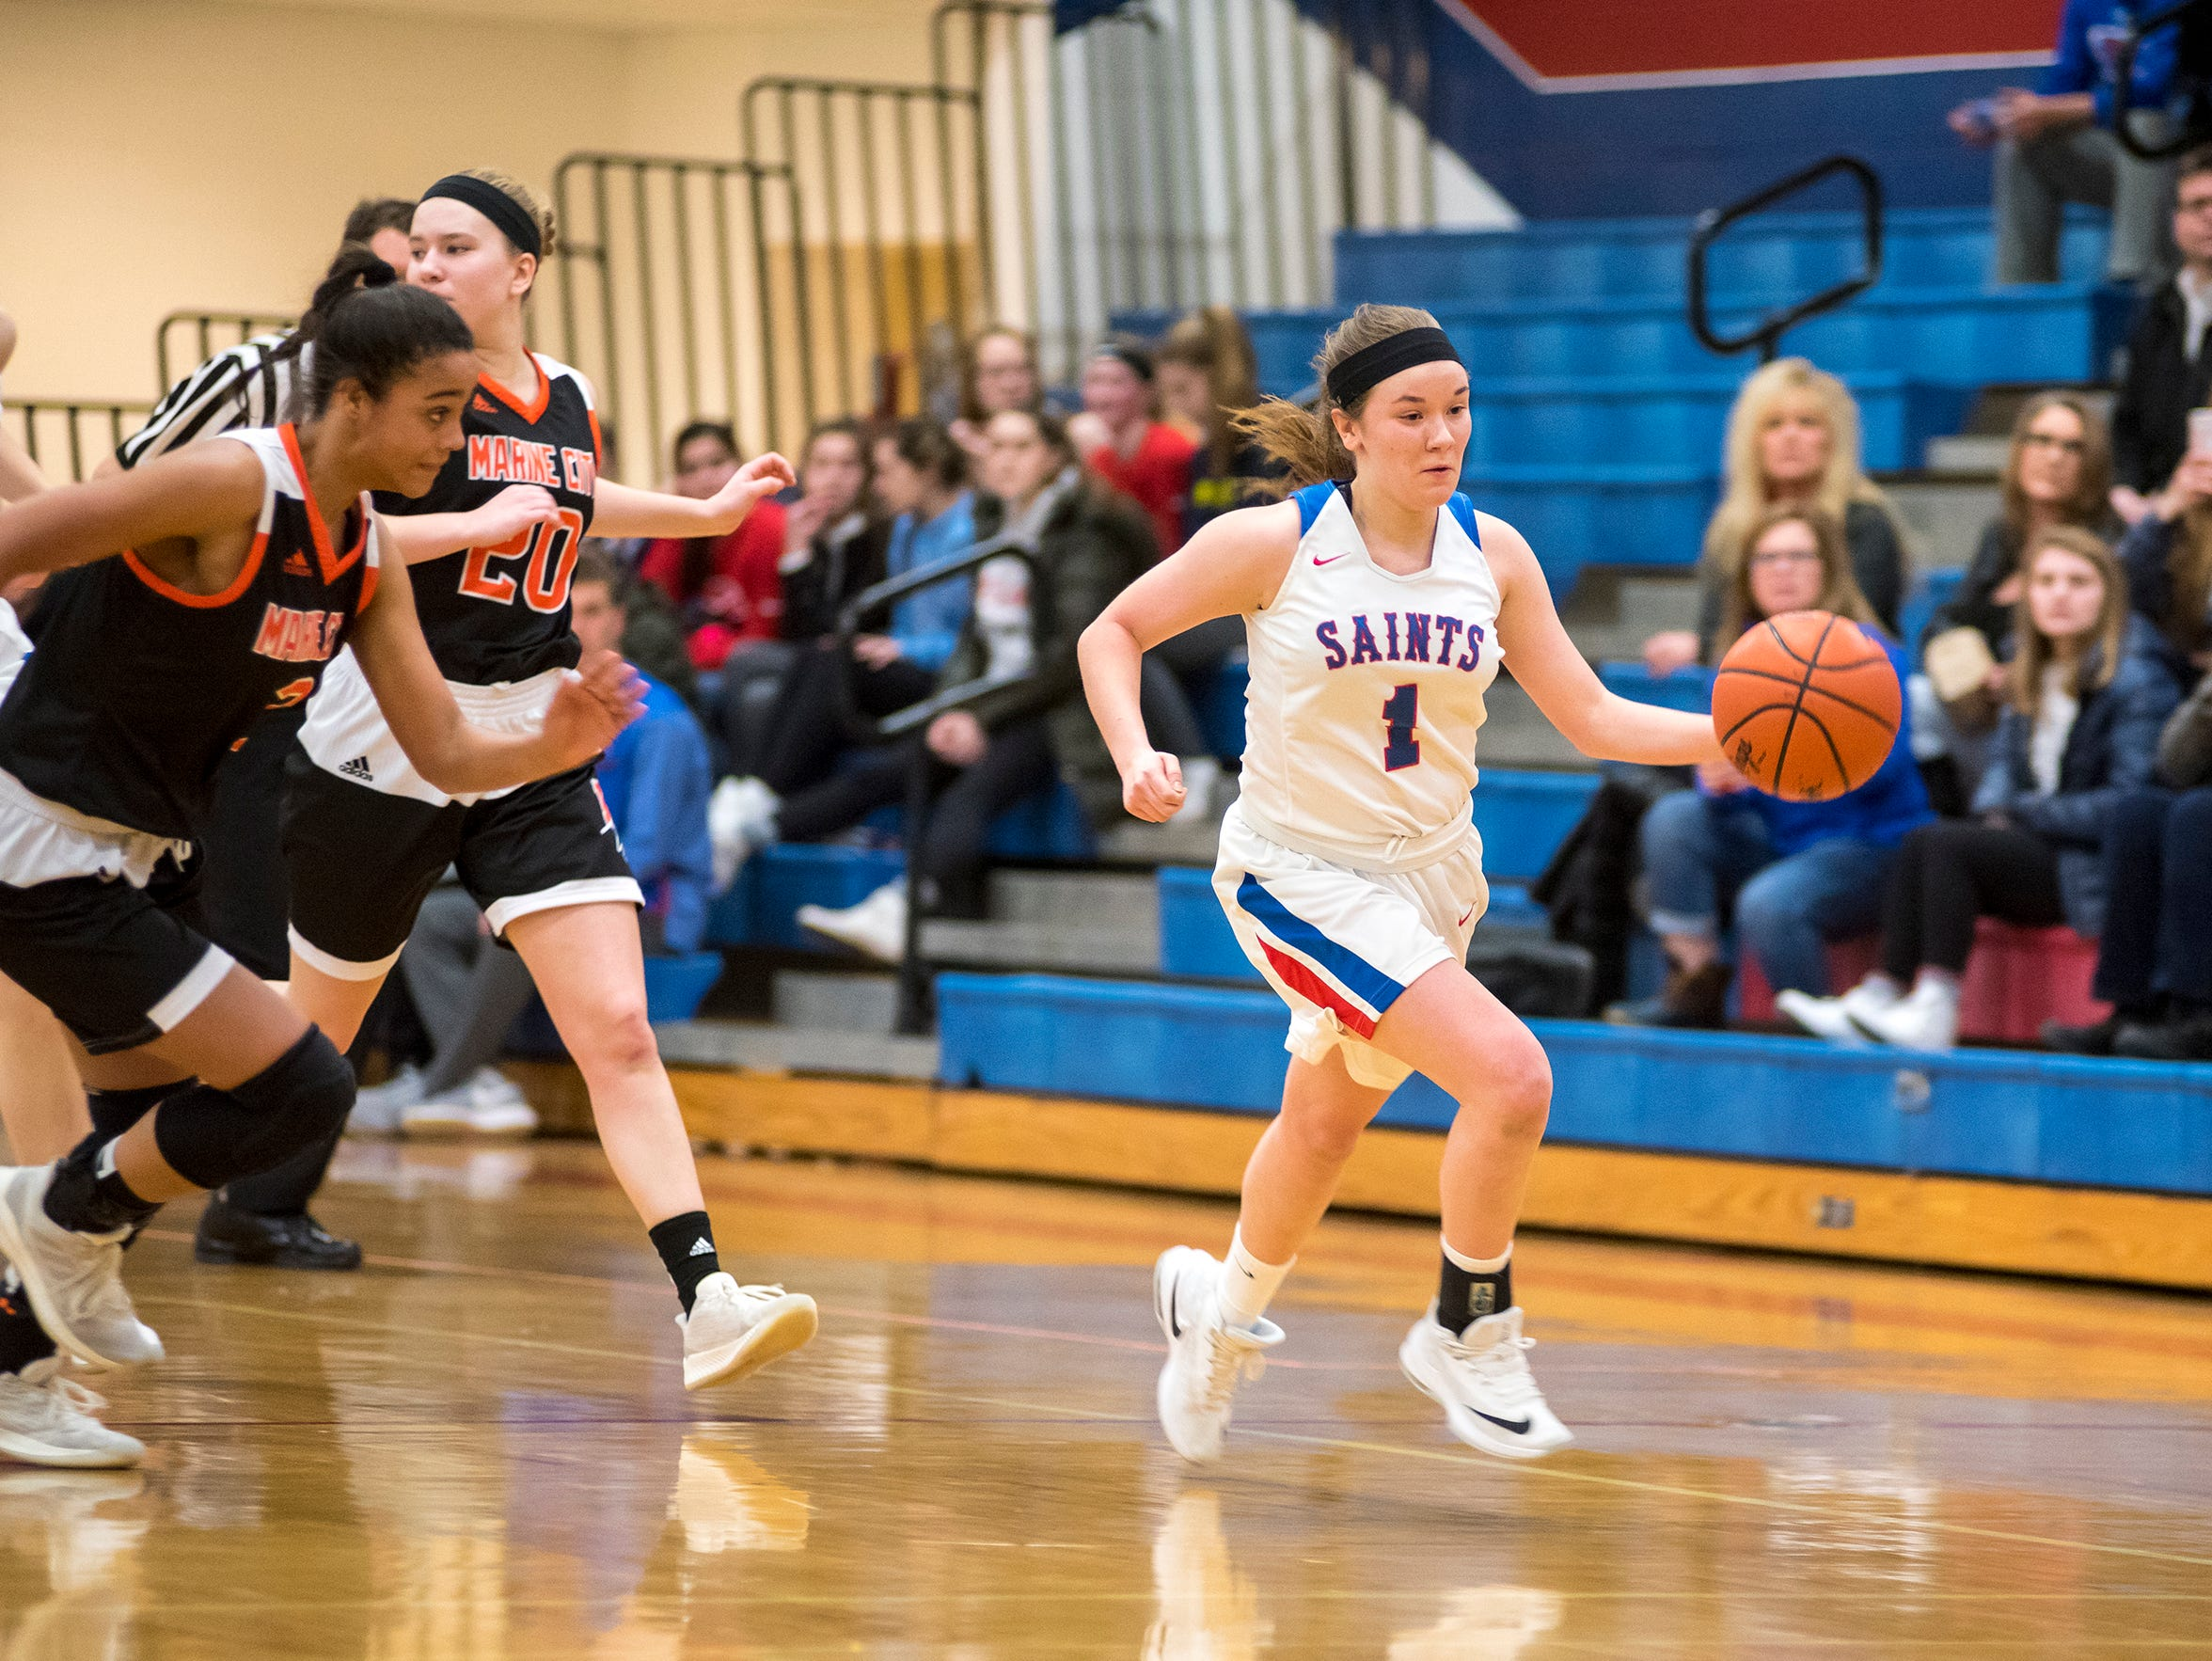 Players from Marine City High School chase St. Clair's Julianna Cataldo (1) as she runs with the basketball during their game Friday, Feb. 8, 2019 at St. Clair High School.